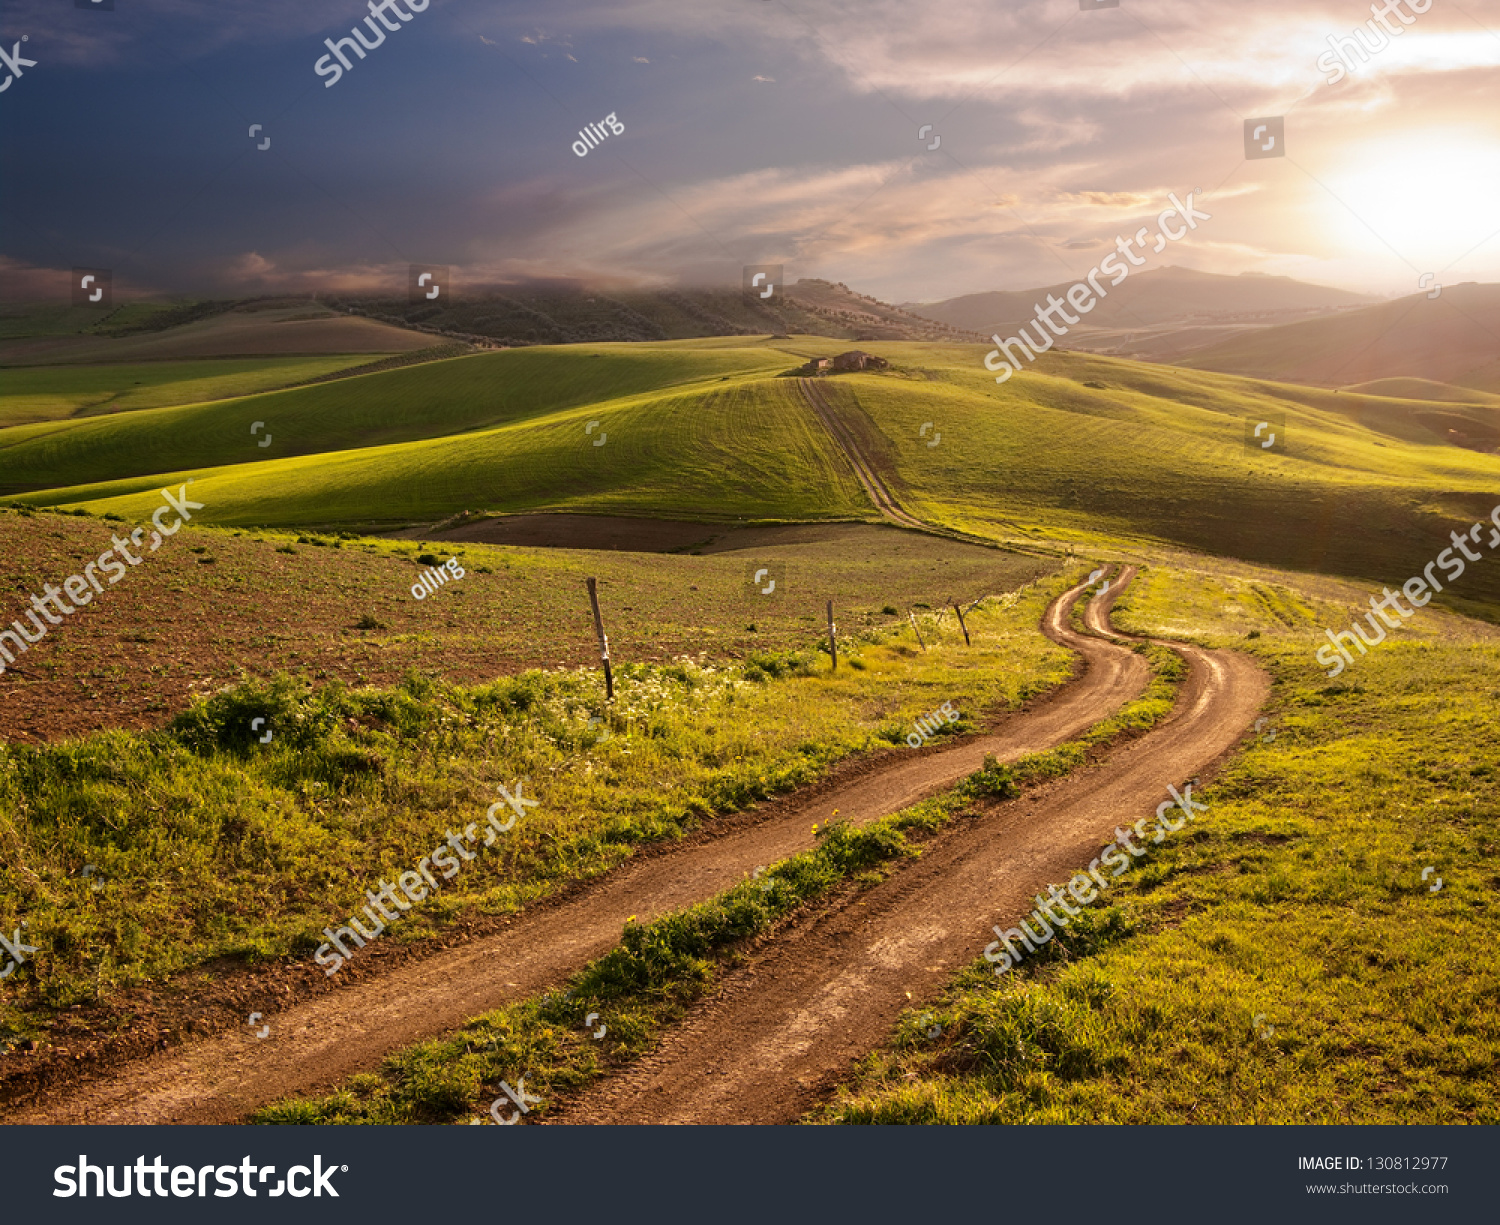 A Long And Winding Rural Path Crosses The Hills At The Sunset Stock Photo 130812977 : Shutterstock